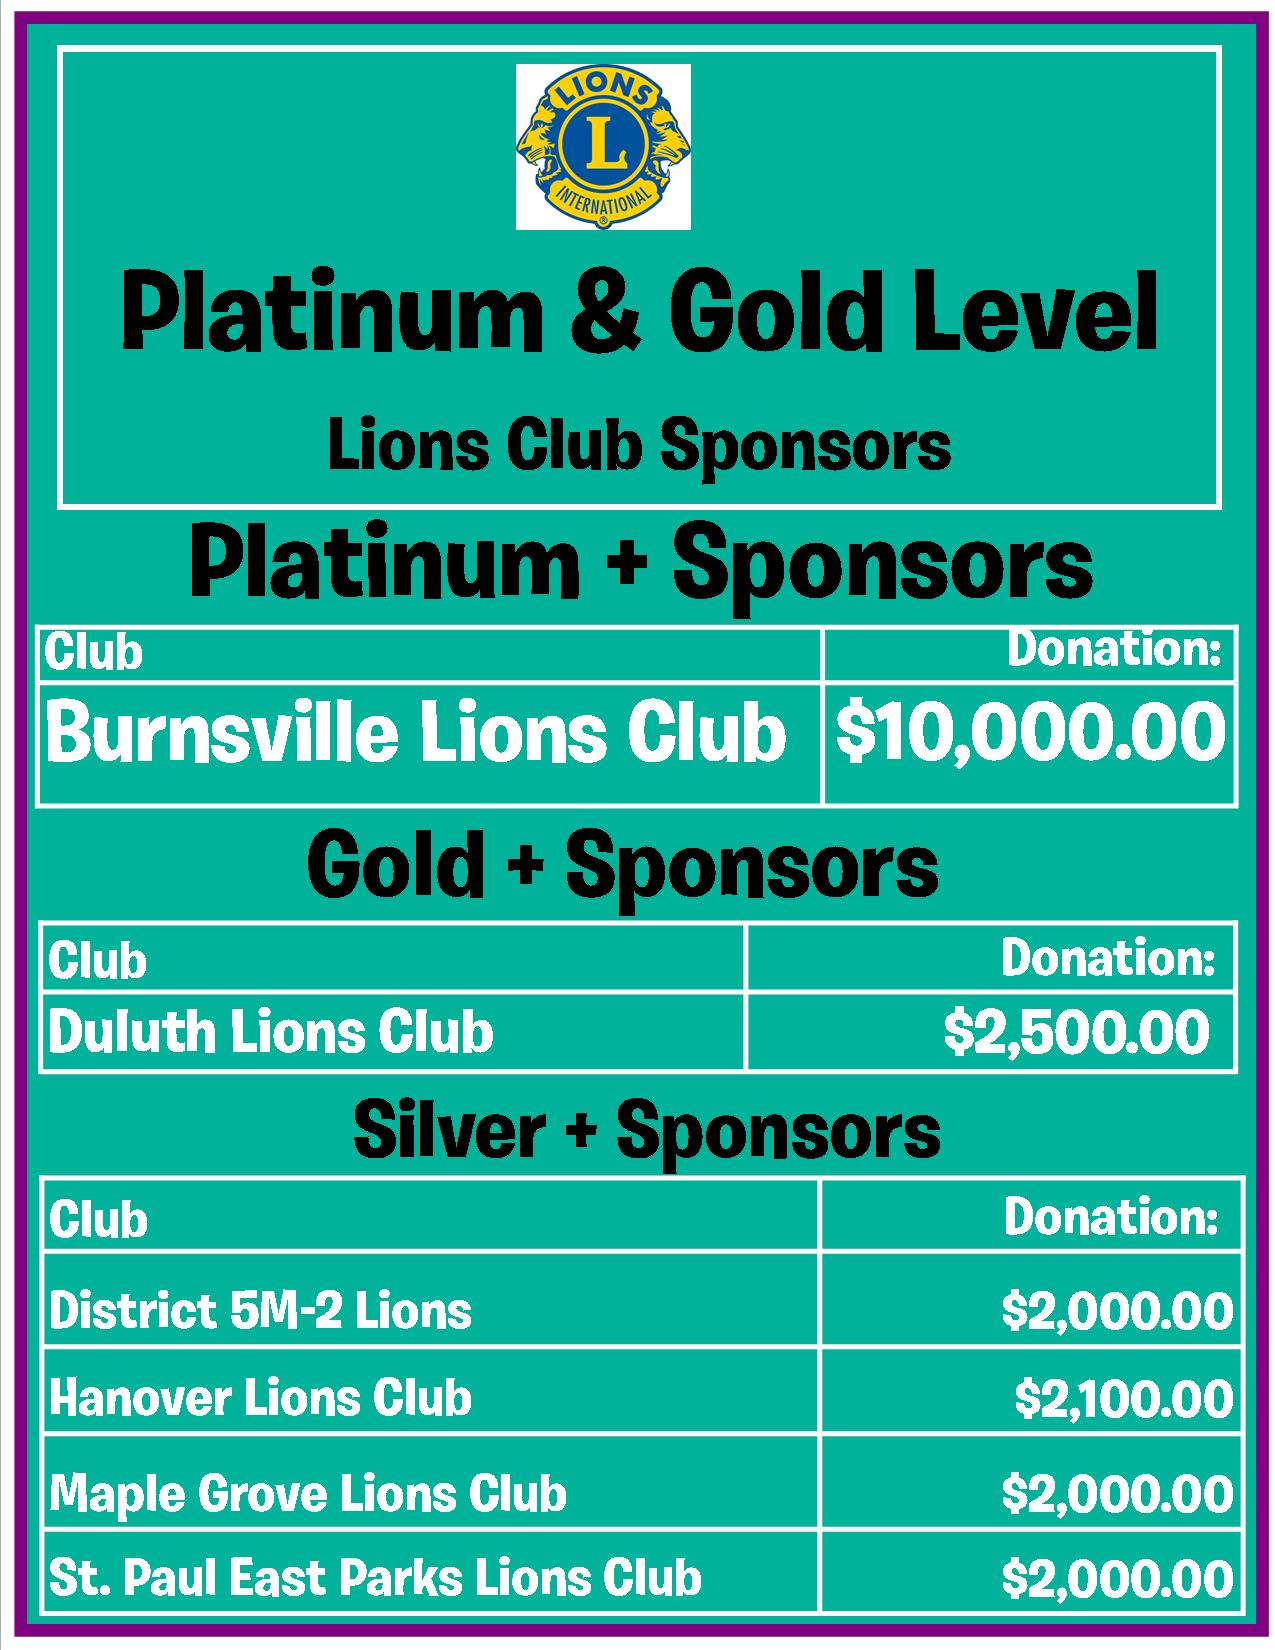 Website Side Platinum-Gold Banner-Silver + 06012019.jpg